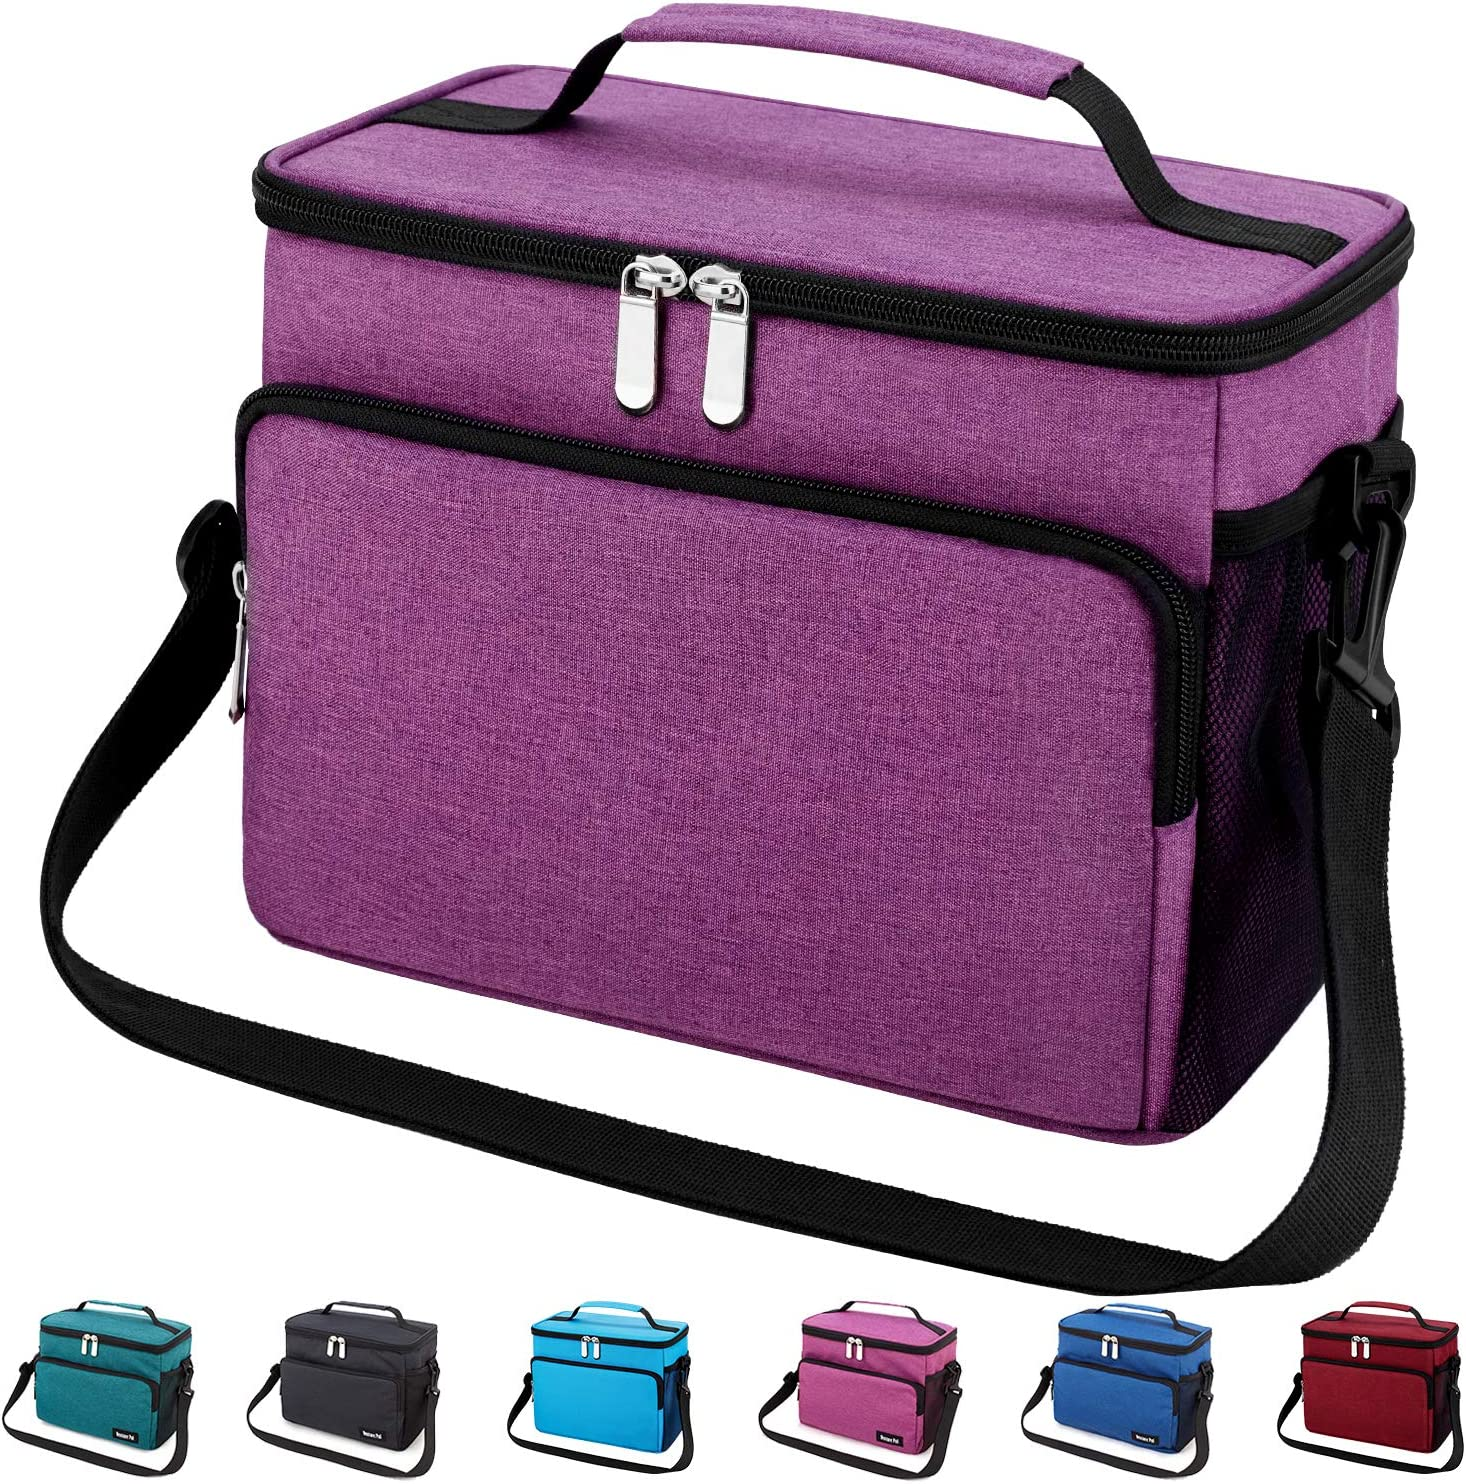 Leakproof Reusable Insulated Cooler Lunch Bag - Office Work School Picnic Hiking Beach Lunch Box Organizer with Adjustable Shoulder Strap for Women,Men and Kids-Dark Purple